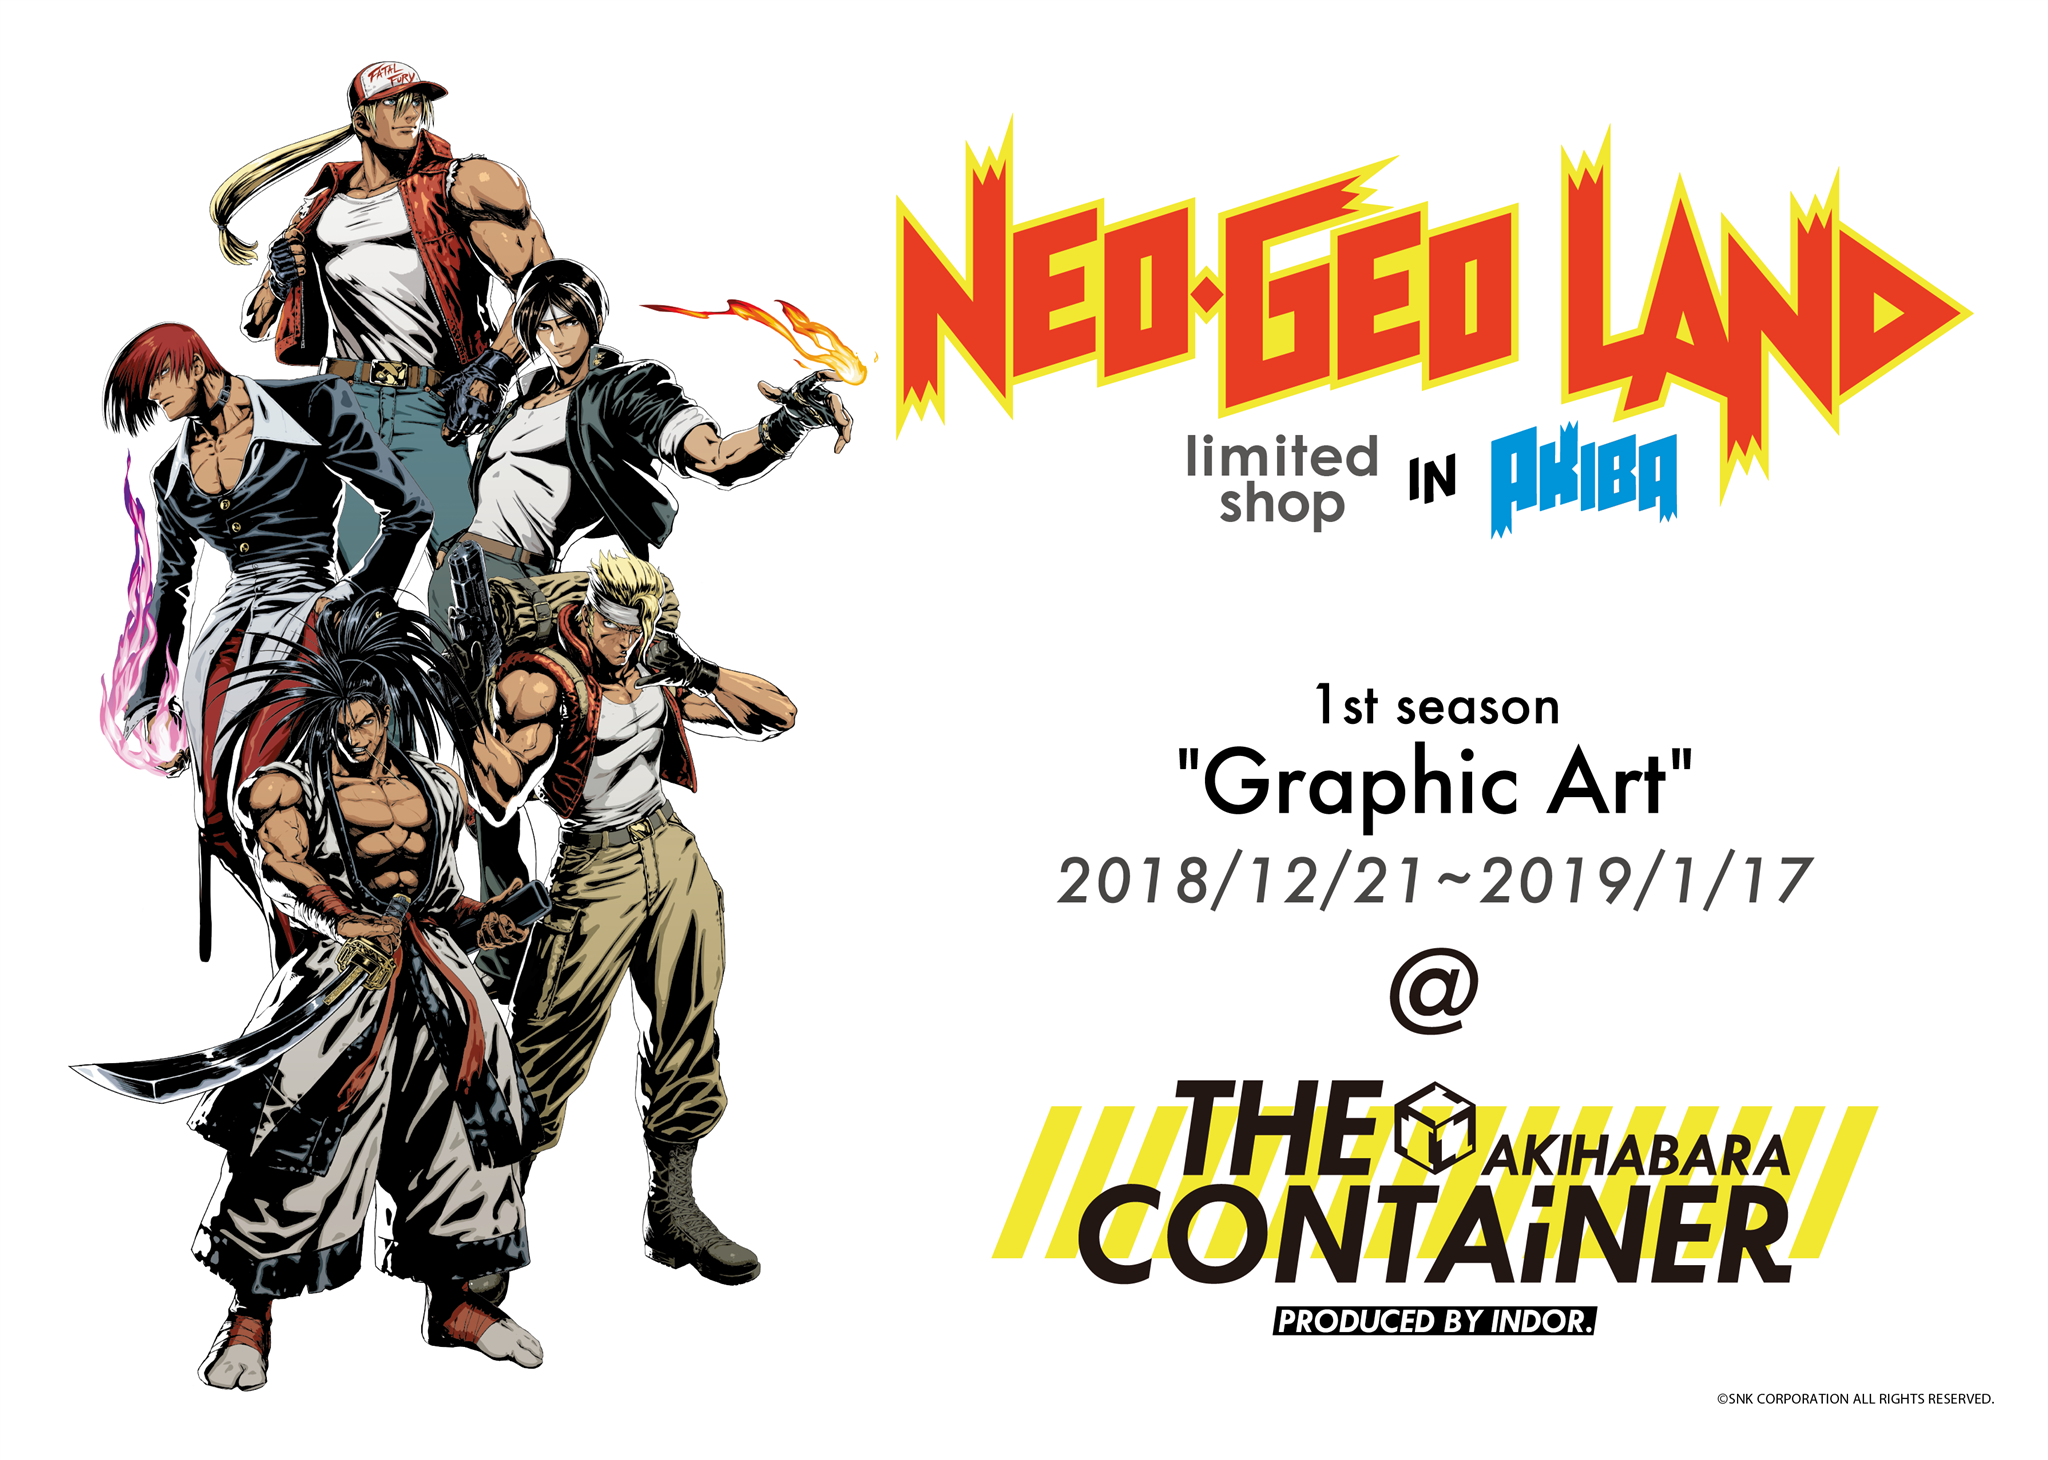 "Together with INDIA, Inc. SNK Corporation and Akihabara launching ""New Monodzukuri"", we announce the opening of NEOGEO LAND Limited Shop in AKIBA for a limited time event!"